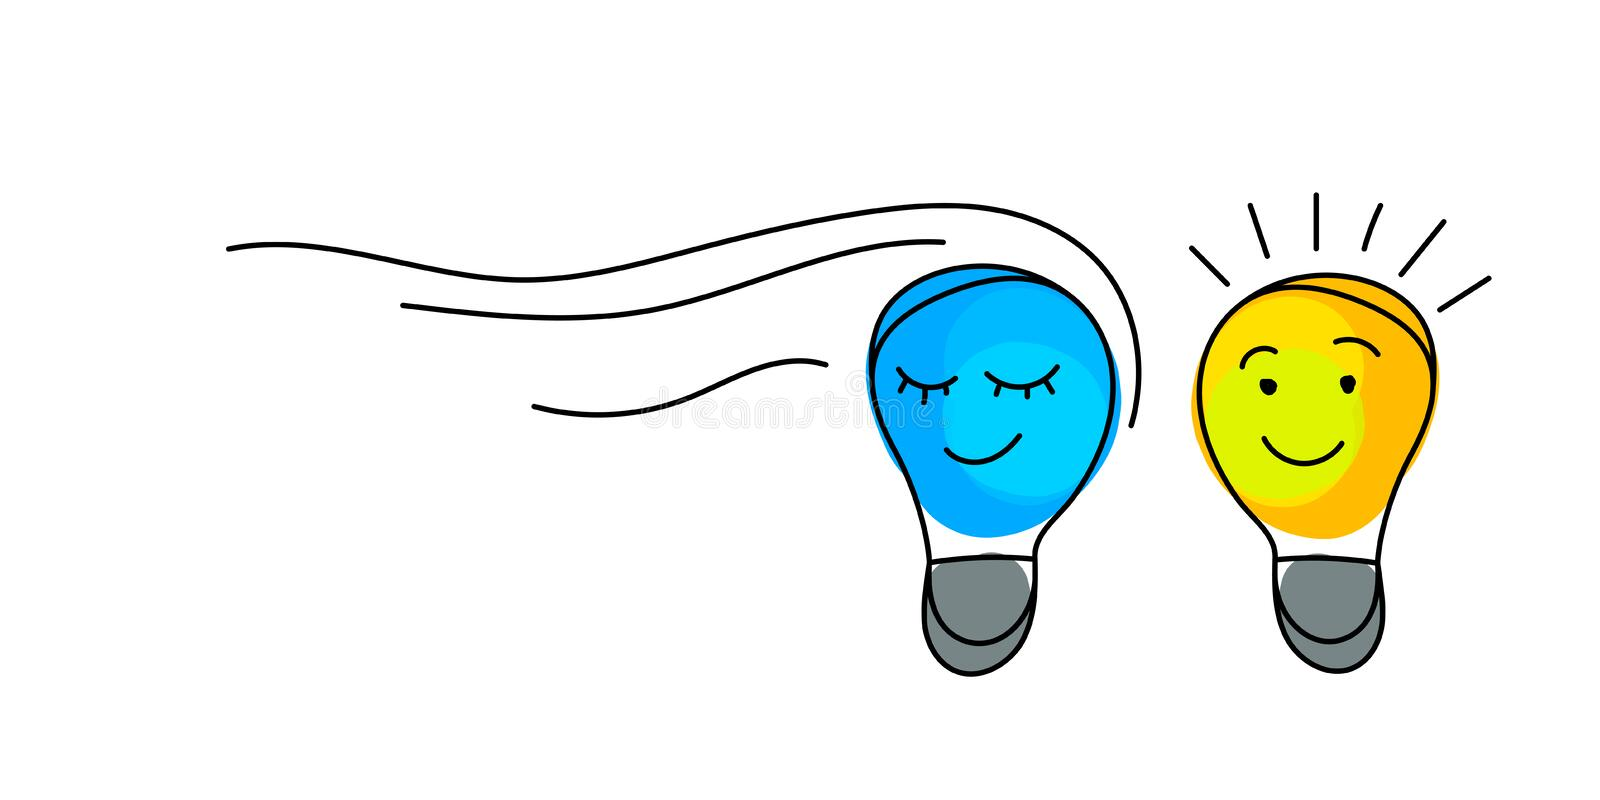 Concept of idea. Light bulbs with character faces. royalty free illustration